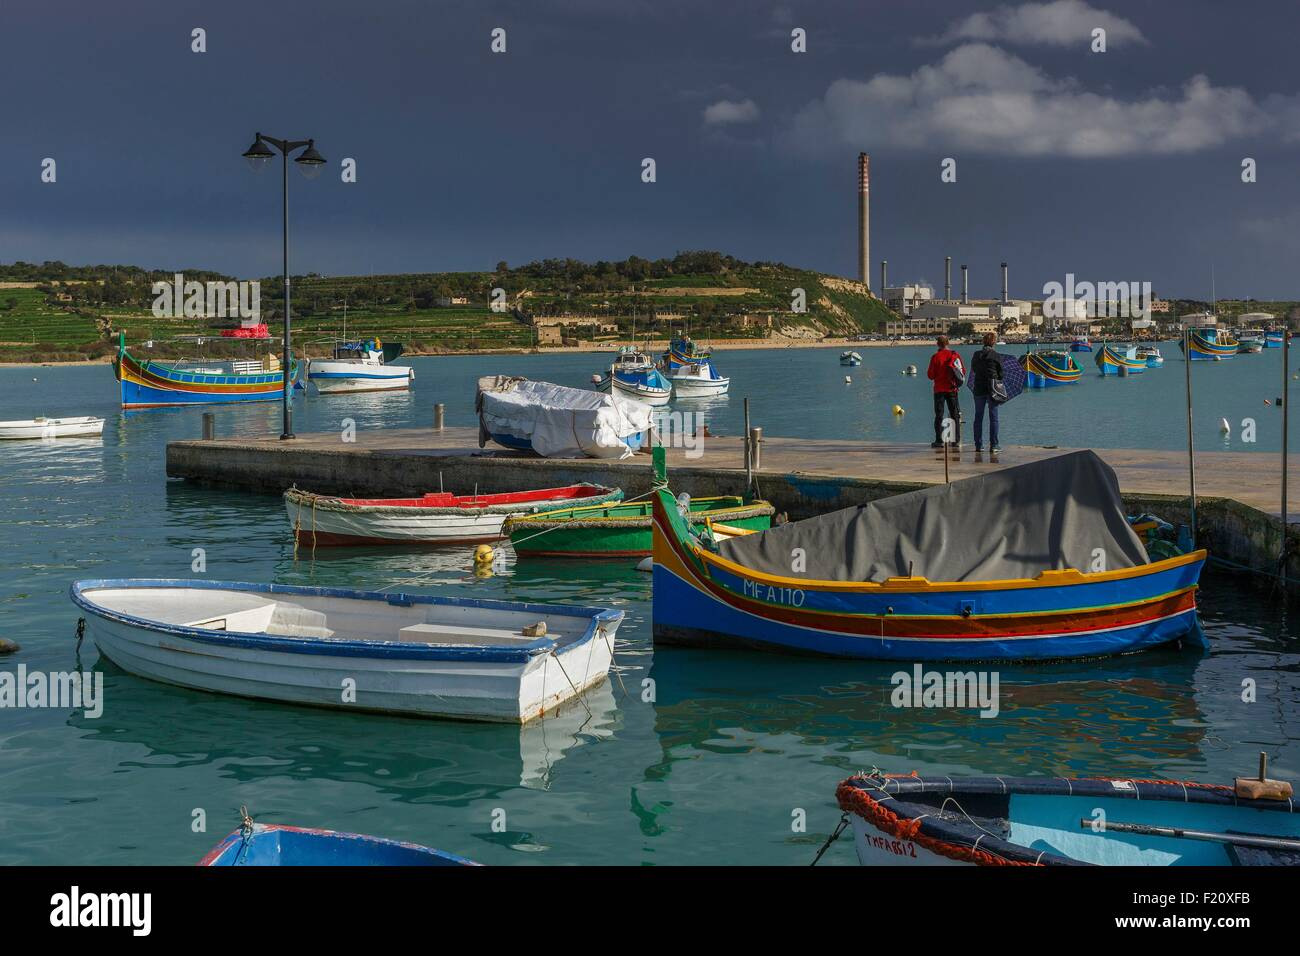 Malta, Marsaxlokk, onlookers walking on the docks of the fishing village under a cloudy sky - Stock Image